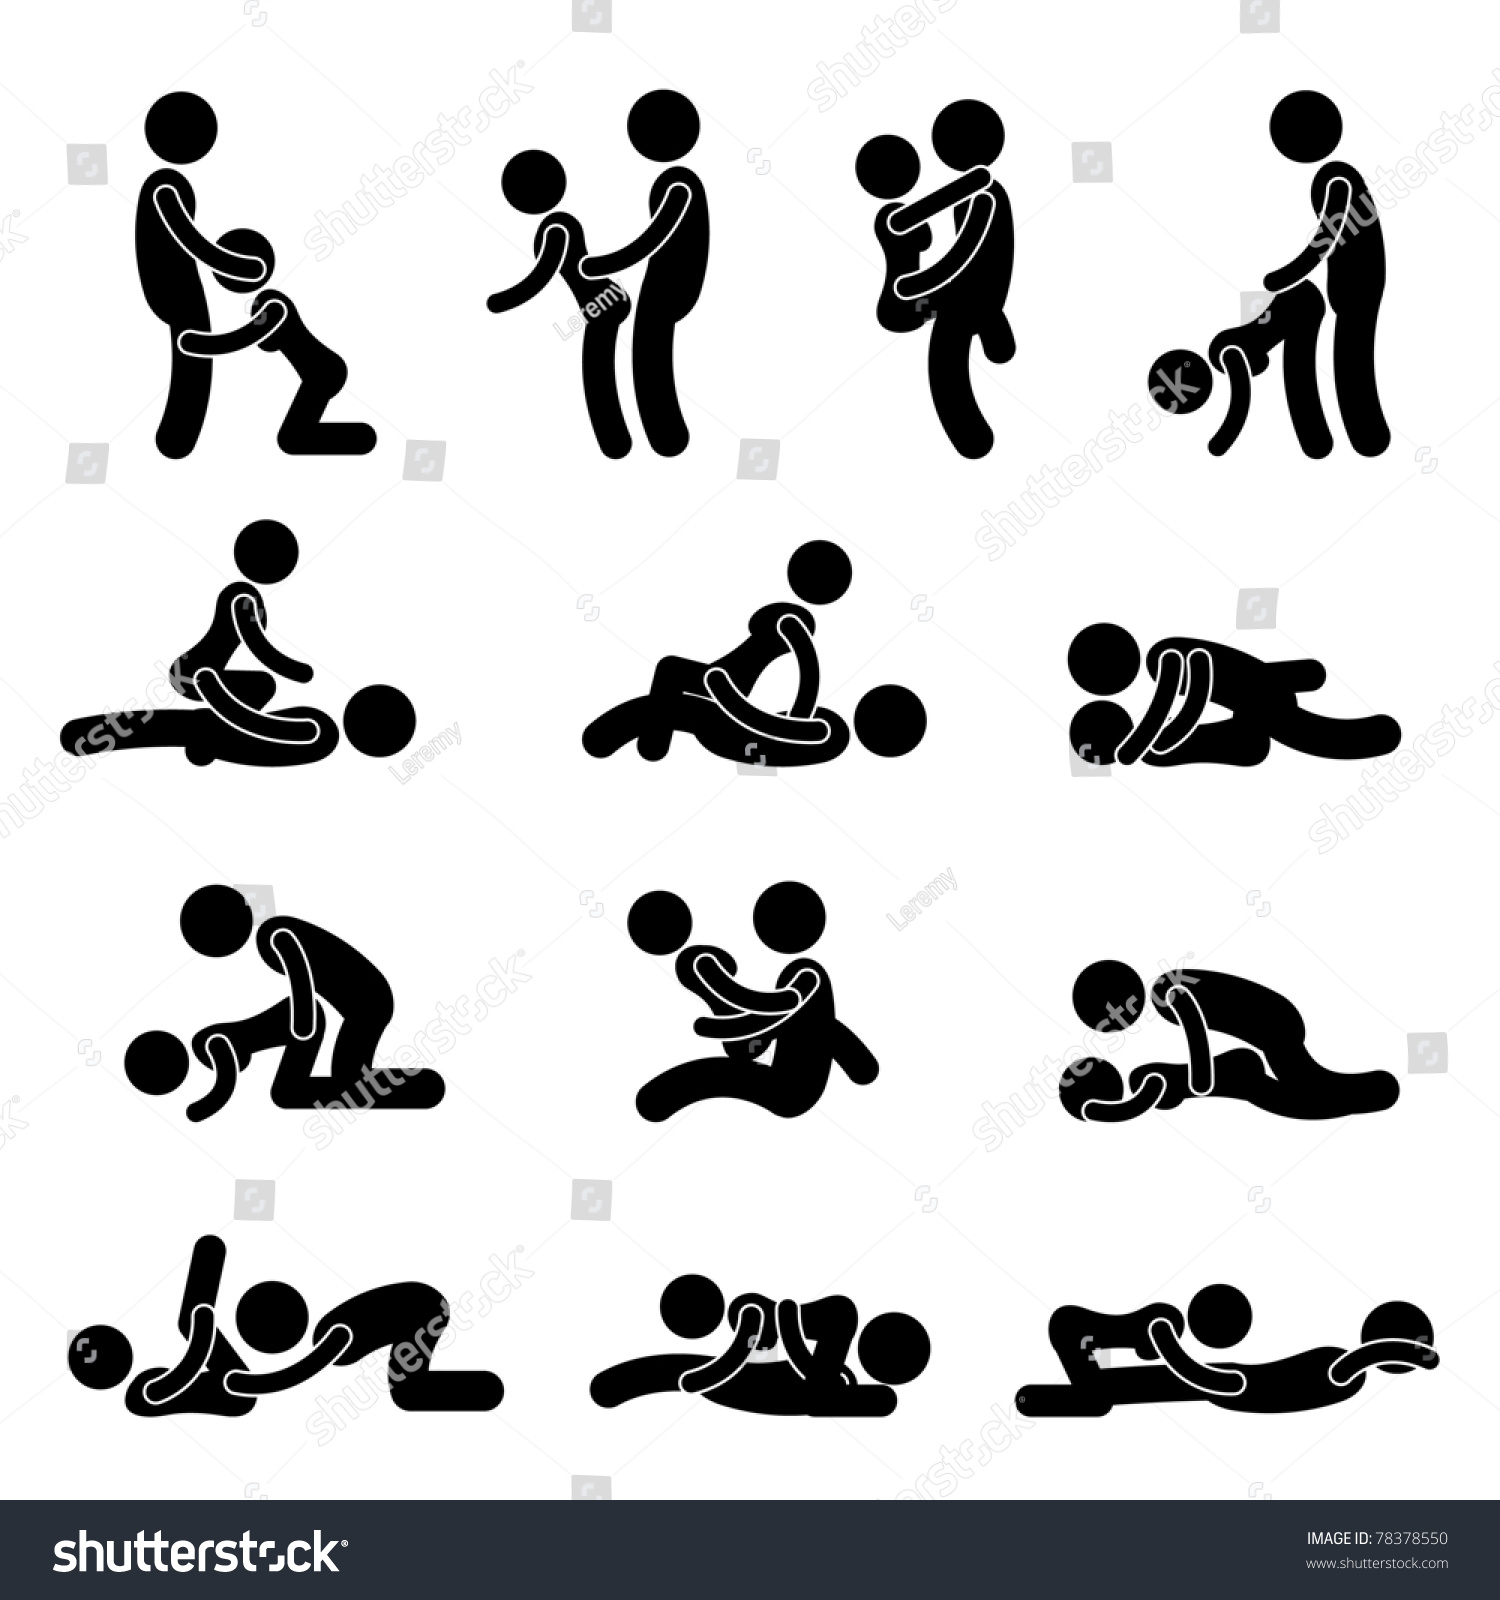 This Cartoon sex icon position fucking nice